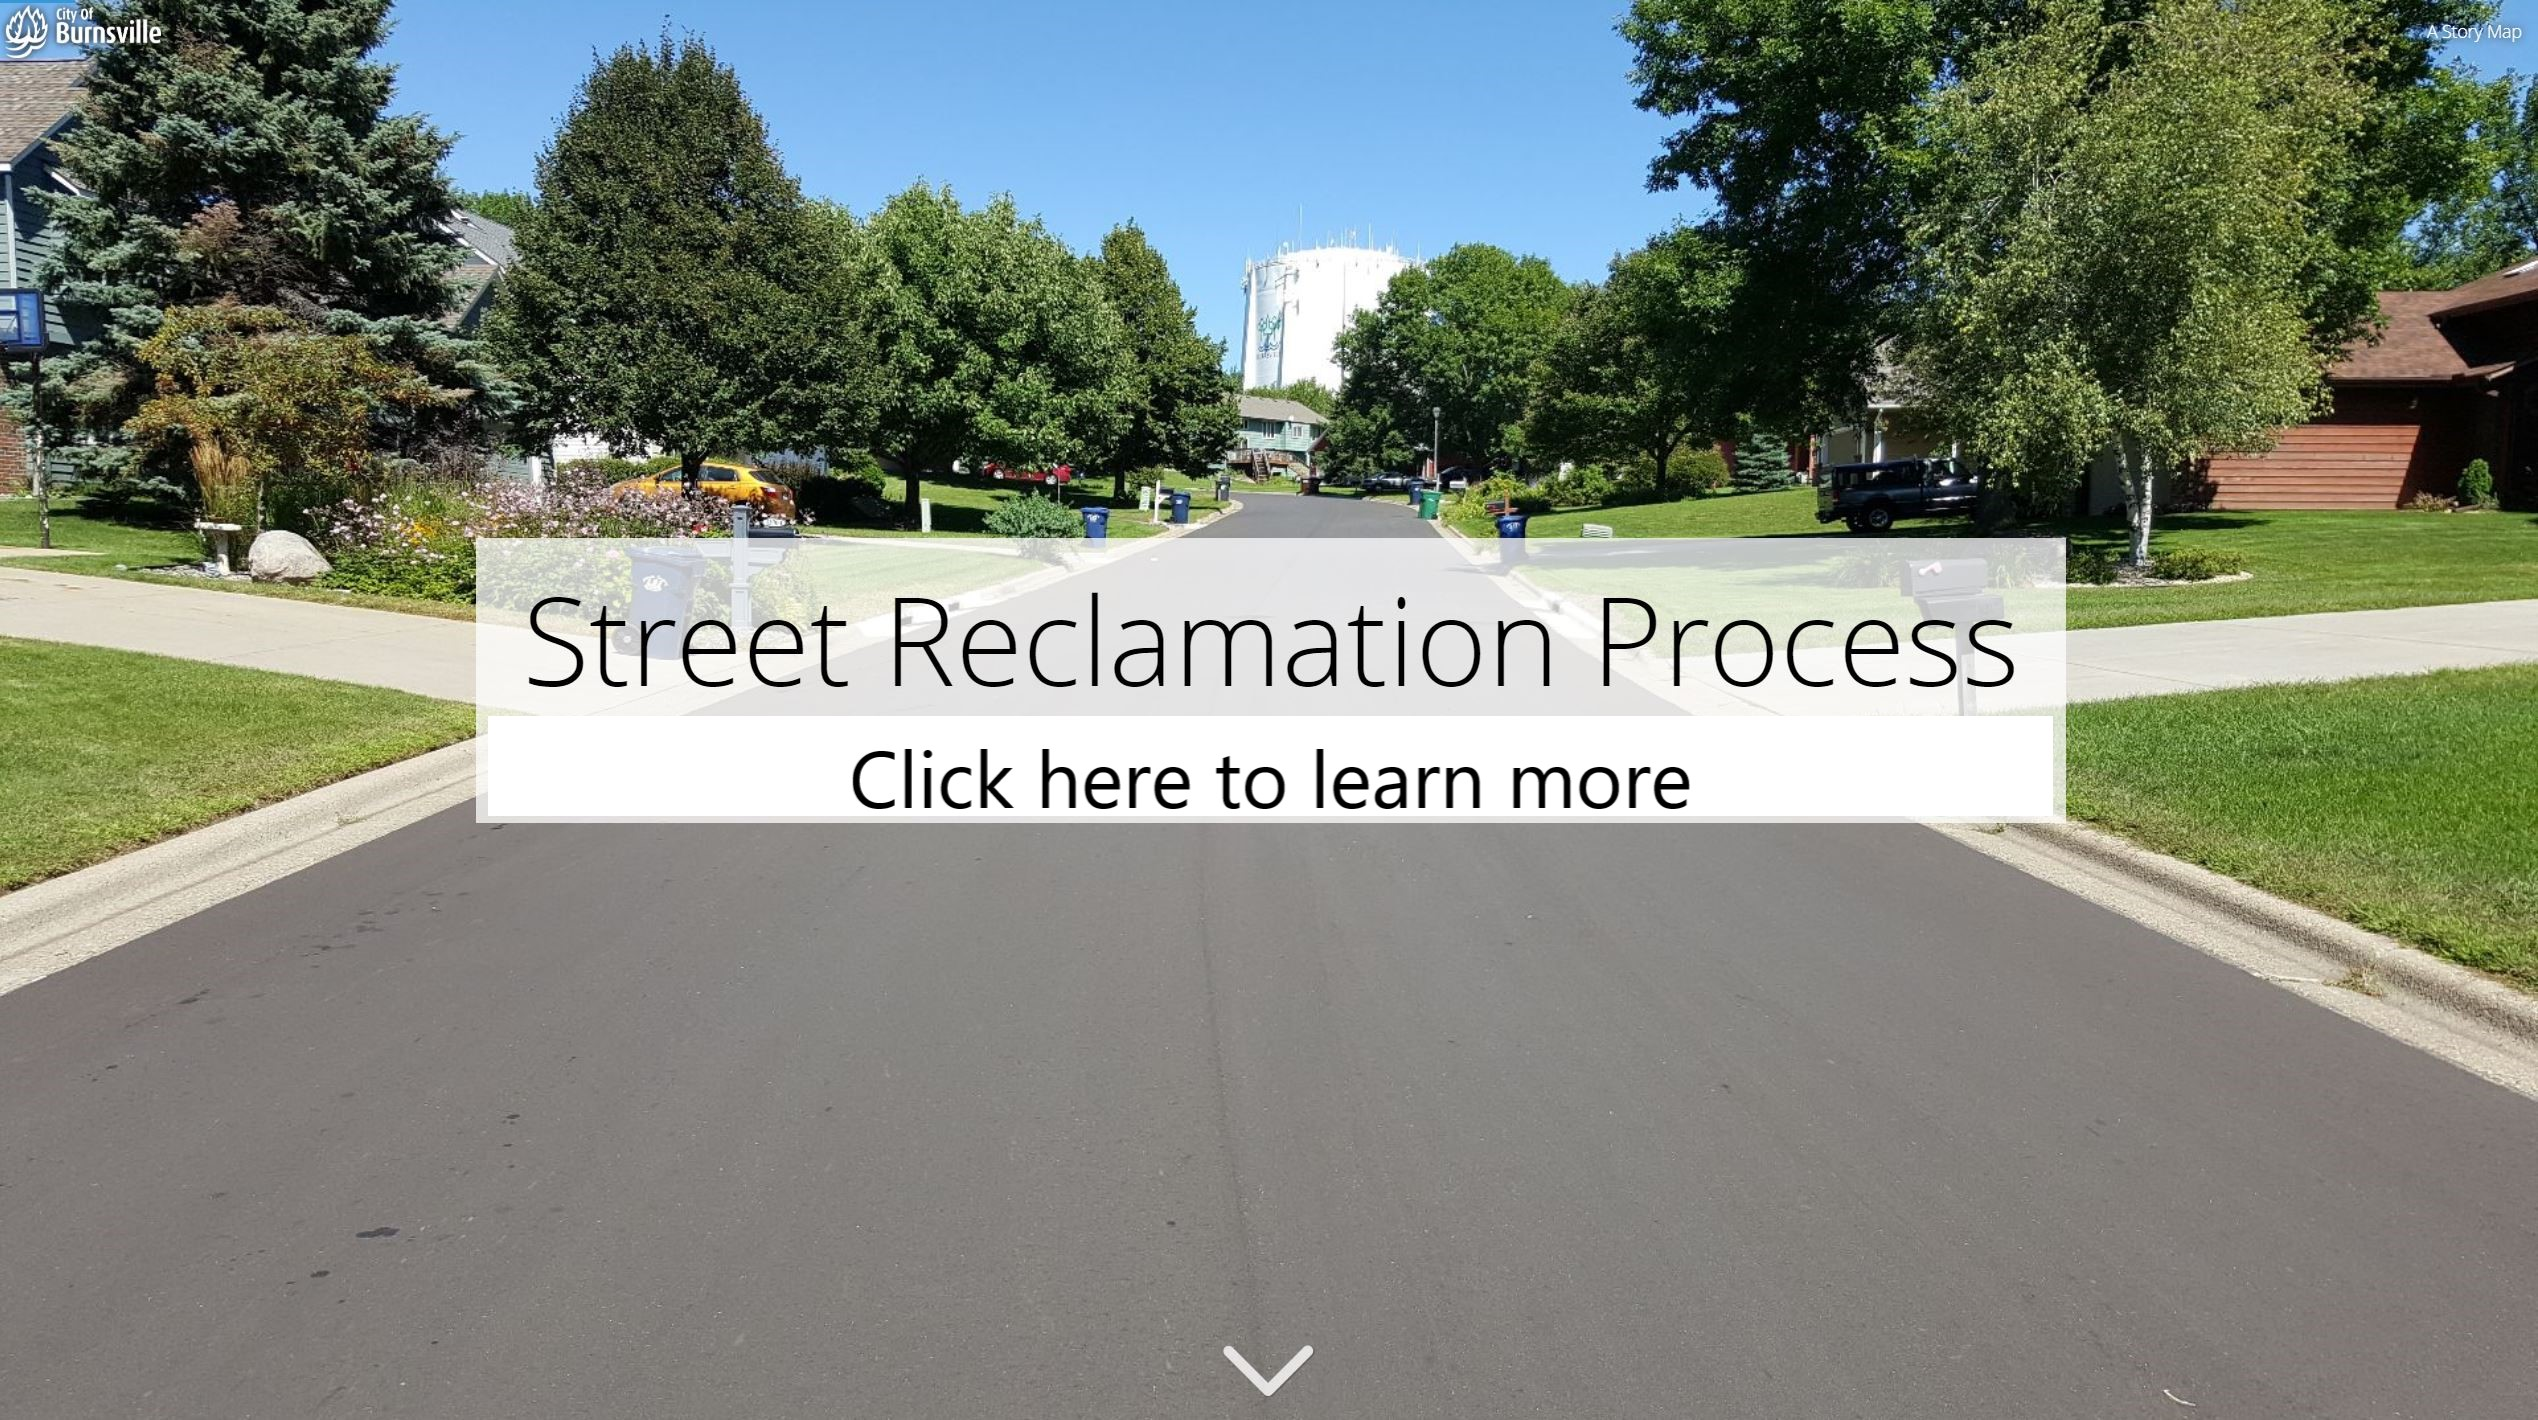 Click here to learn more about the street reclamation process